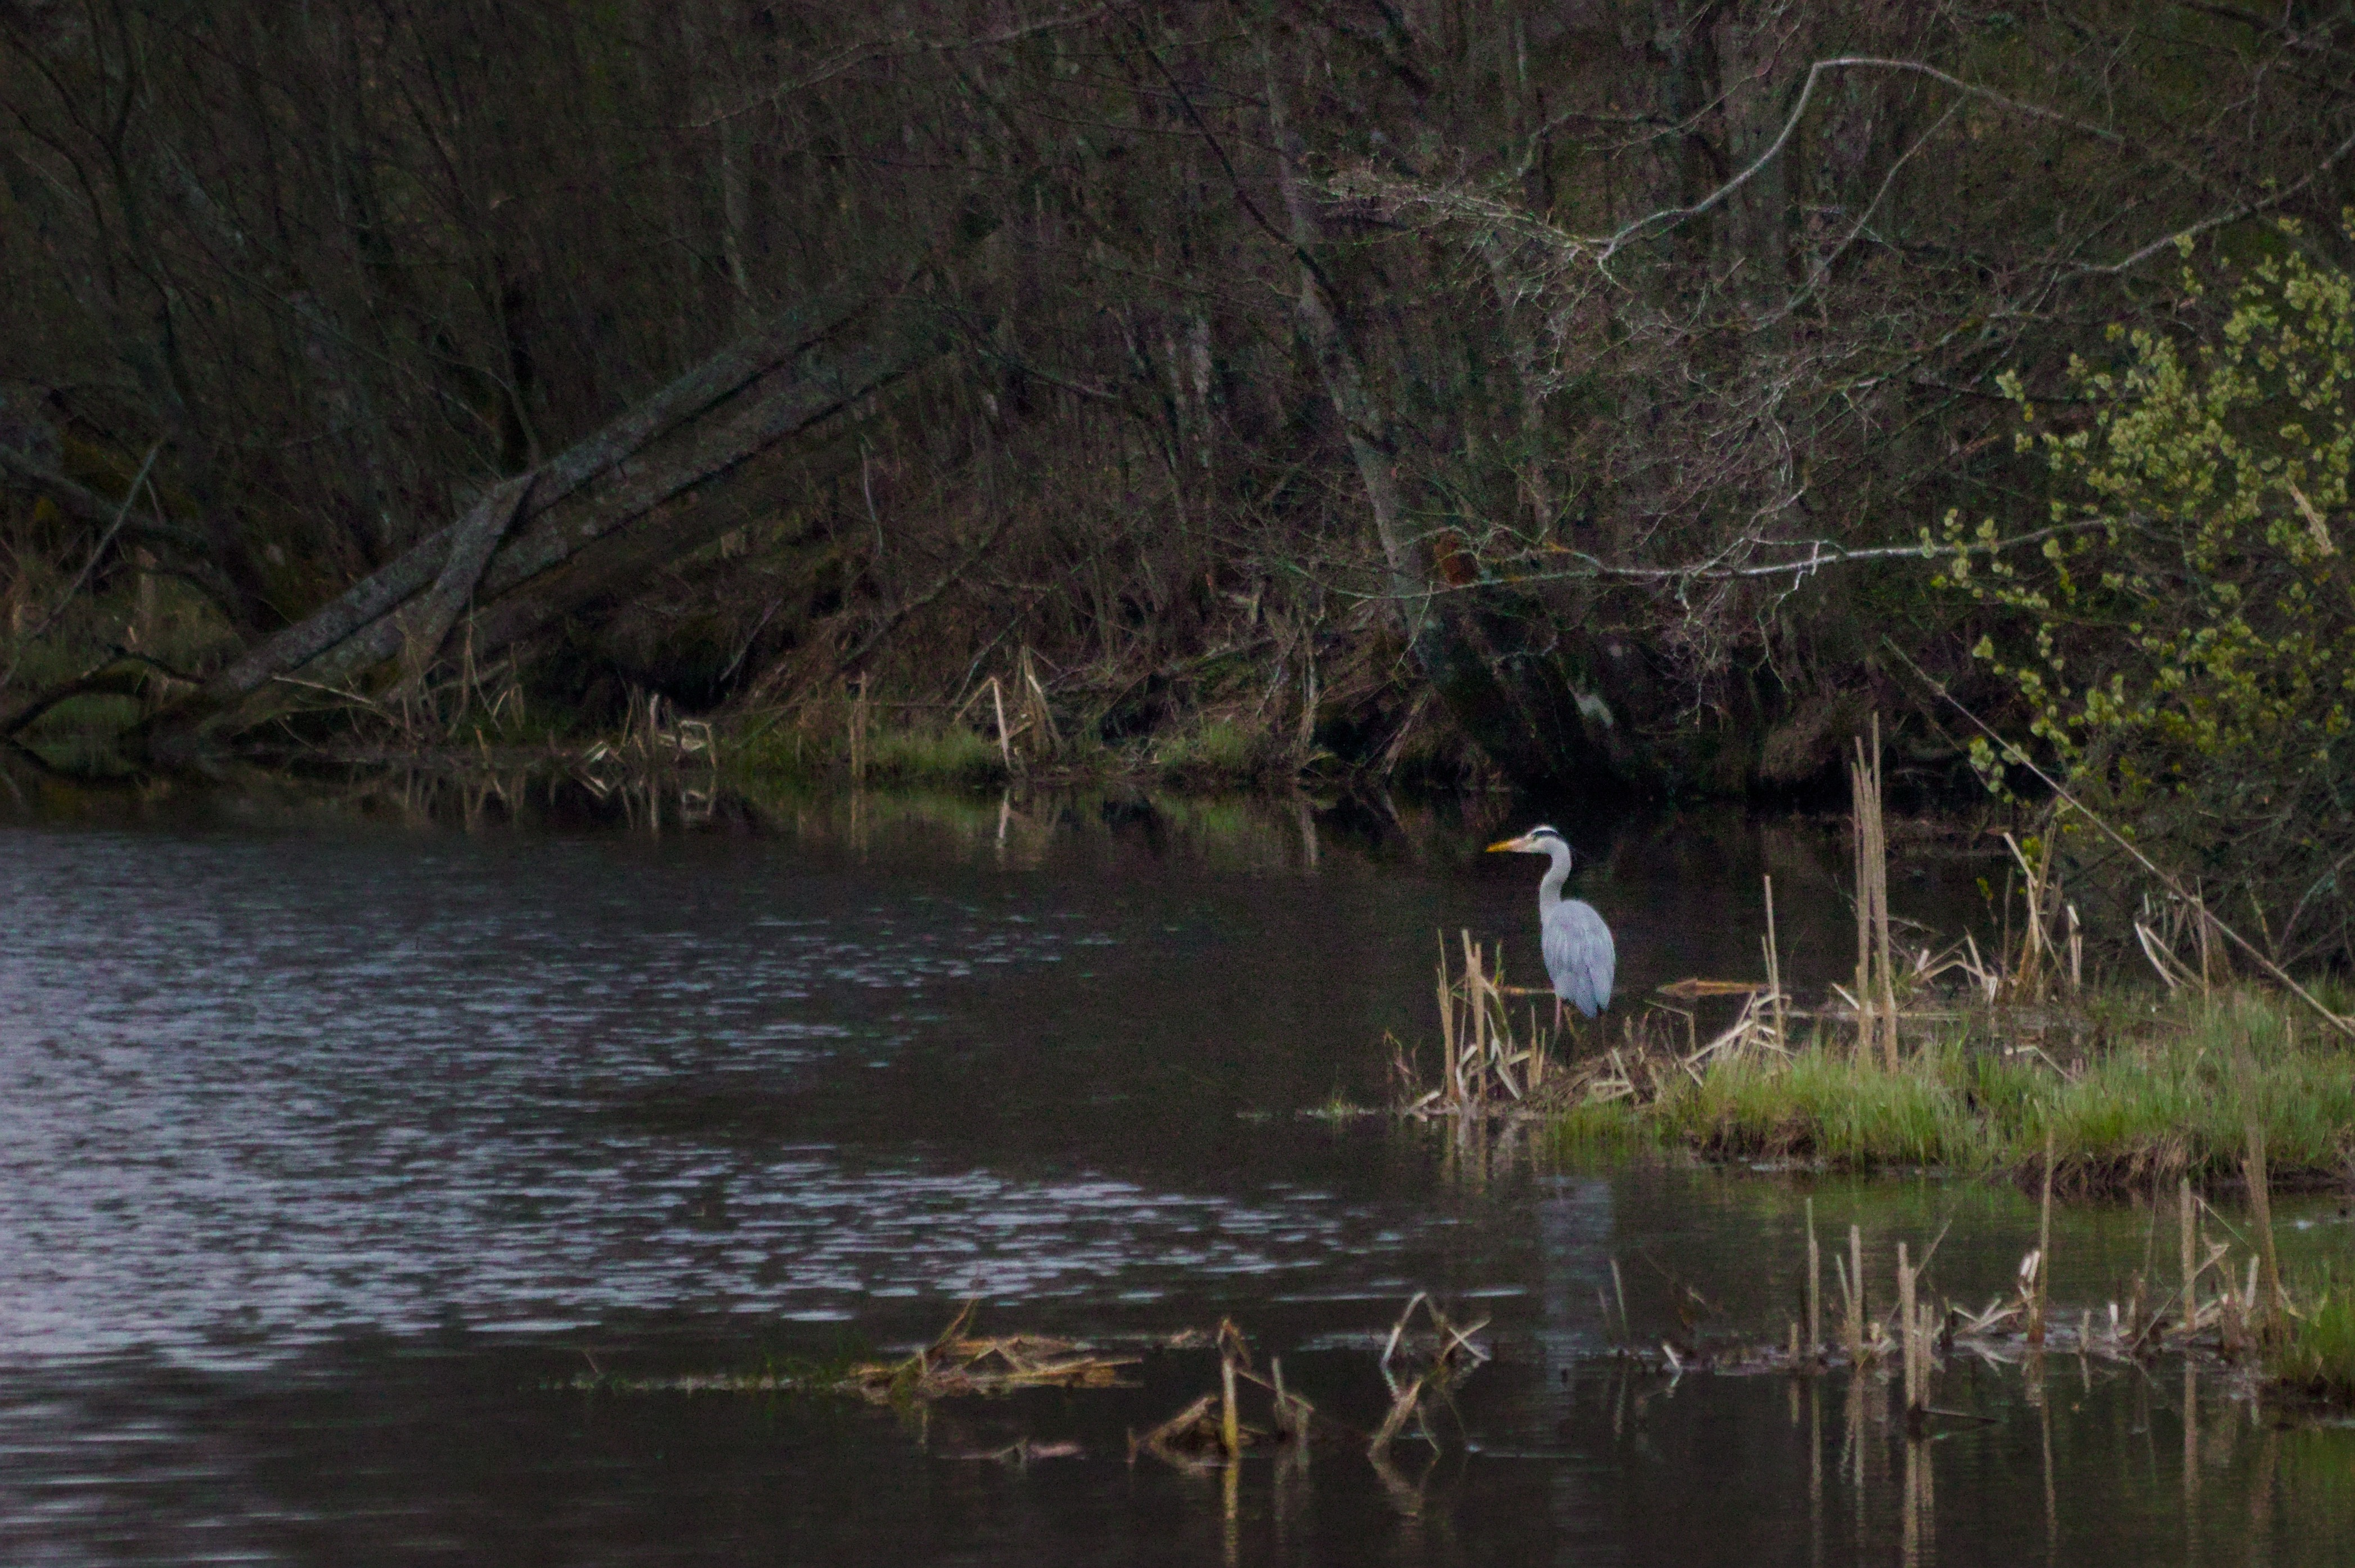 Heron on the lookout